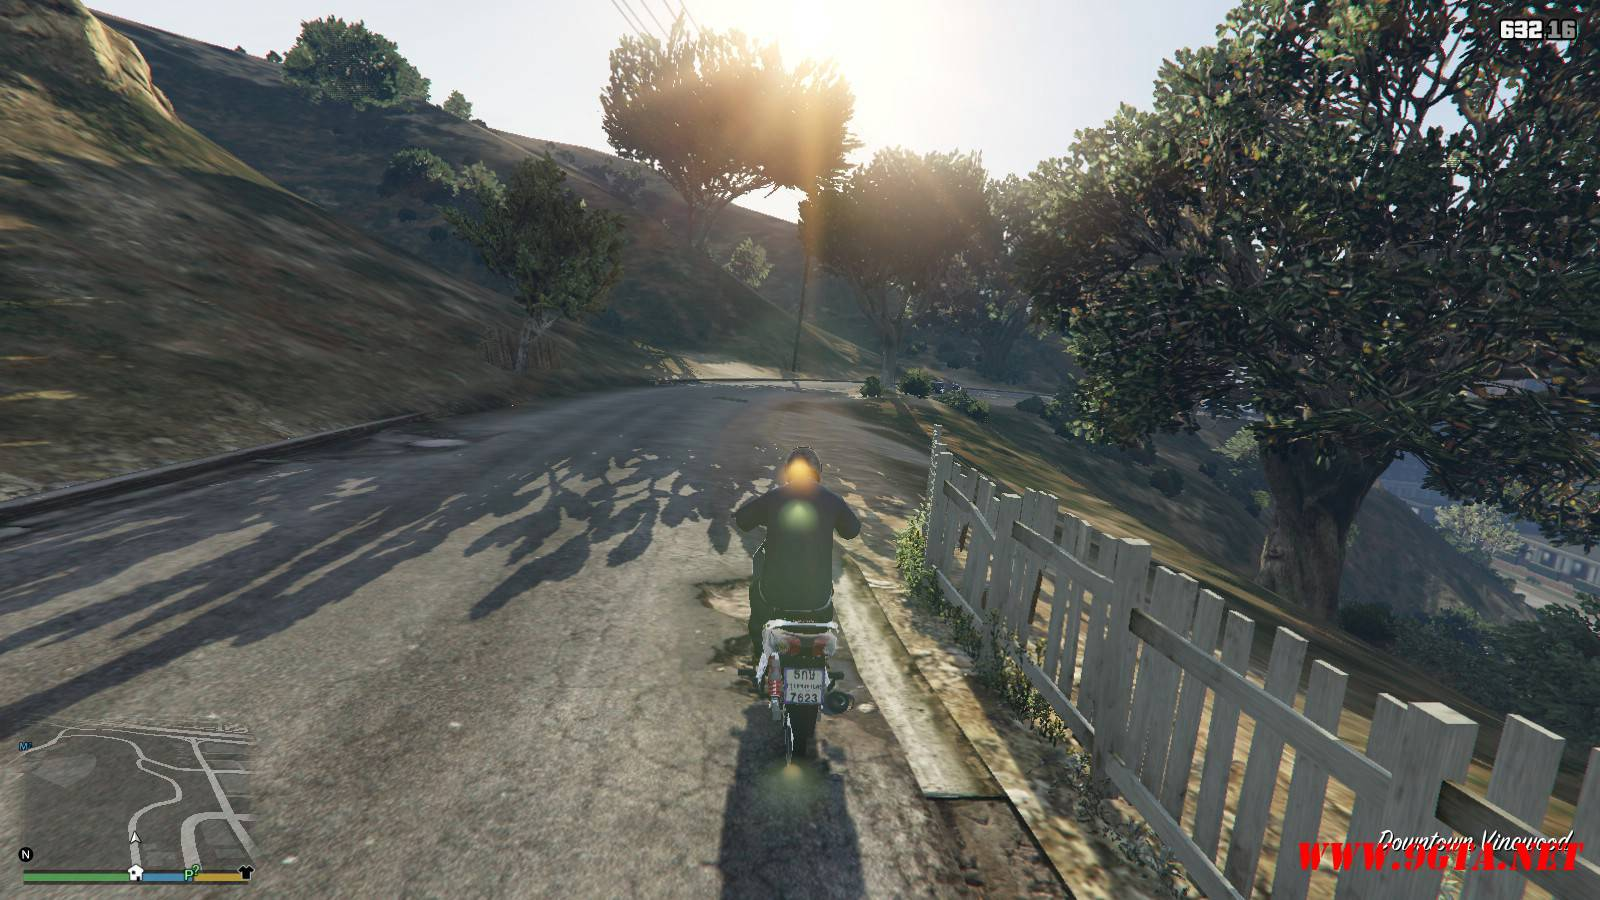 2015 Honda Wave 125i Mod For GTA5 (13)